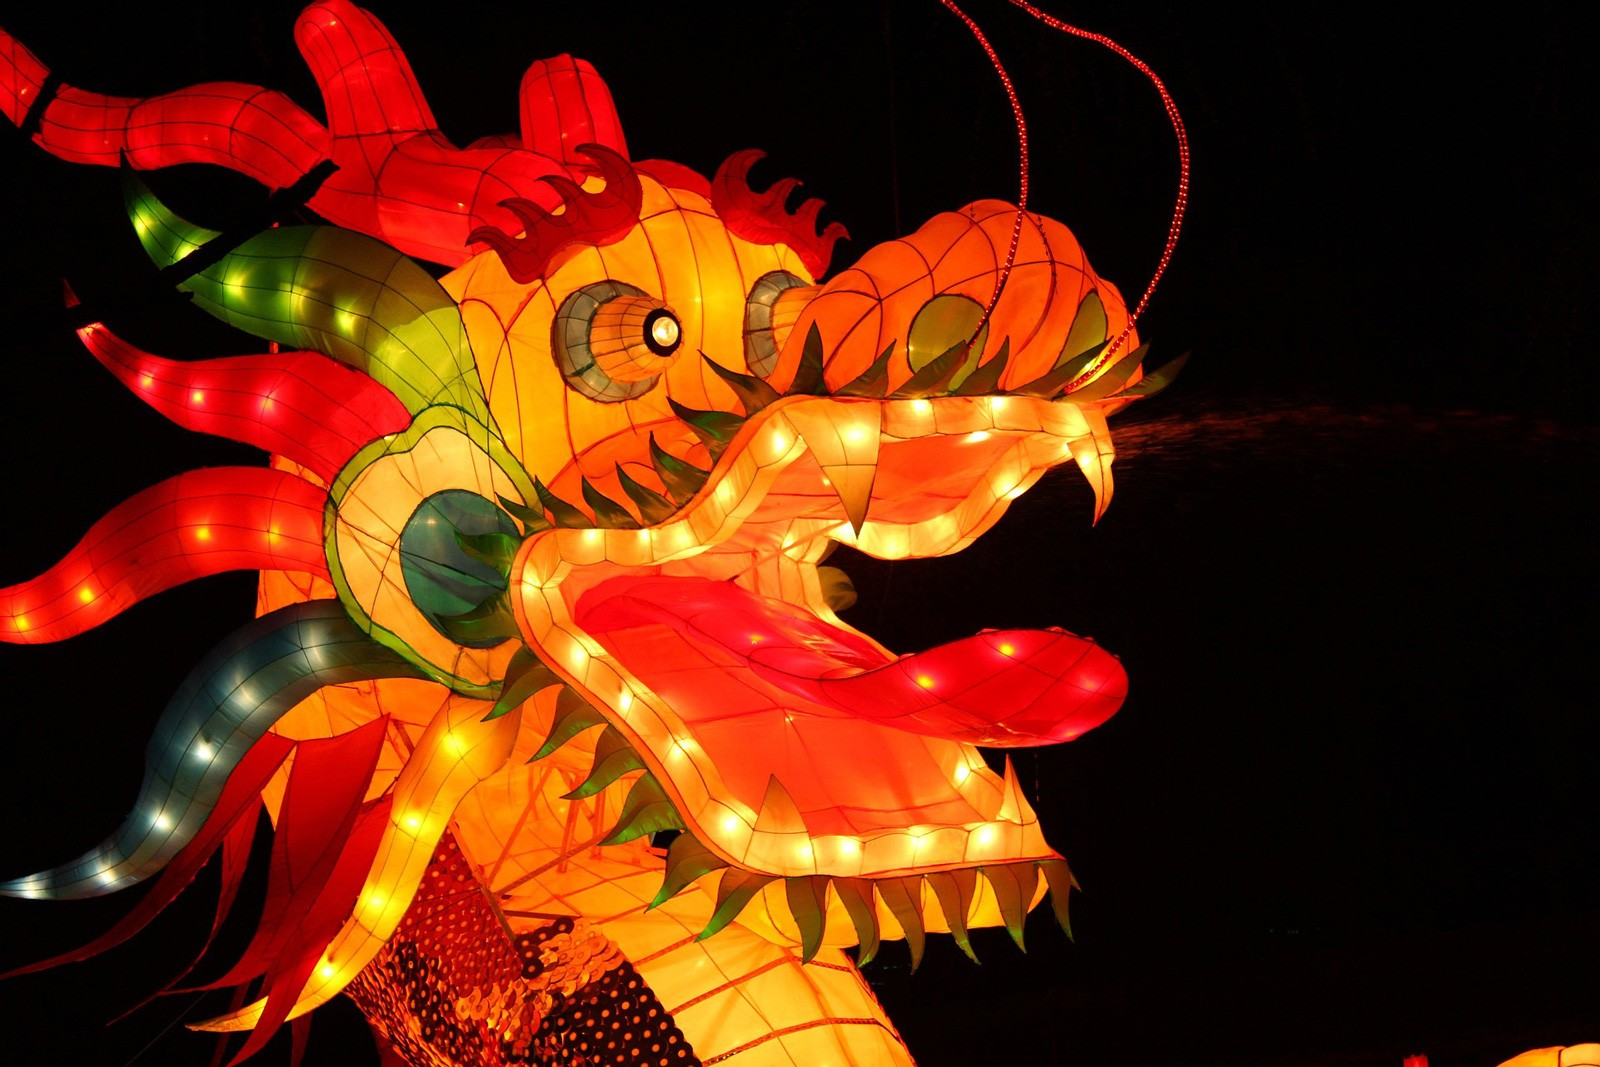 Chinese Dragons And Dragon Meanings On Whats Your Sign